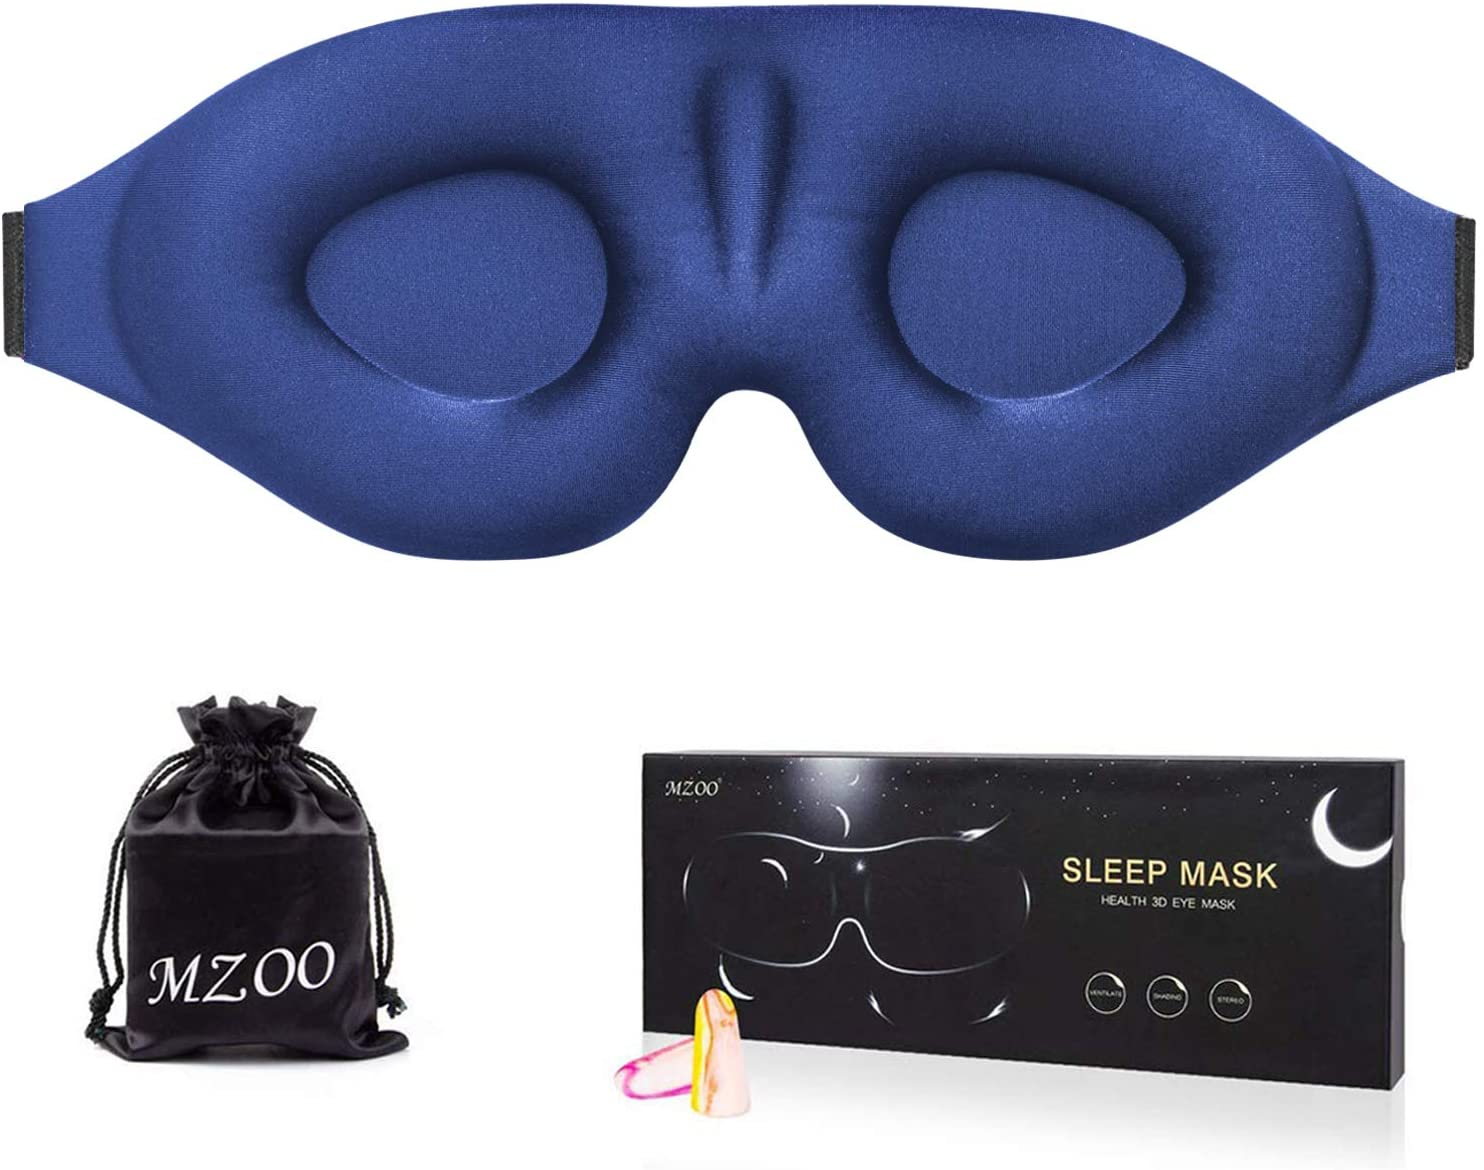 Amazon.com: MZOO Sleep Eye Mask for Men Women, 3D Contoured Cup Sleeping  Mask & Blindfold, Concave Molded Night Sleep Mask, Block Out Light, Soft  Comfort Eye Shade Cover for Travel Yoga Nap,